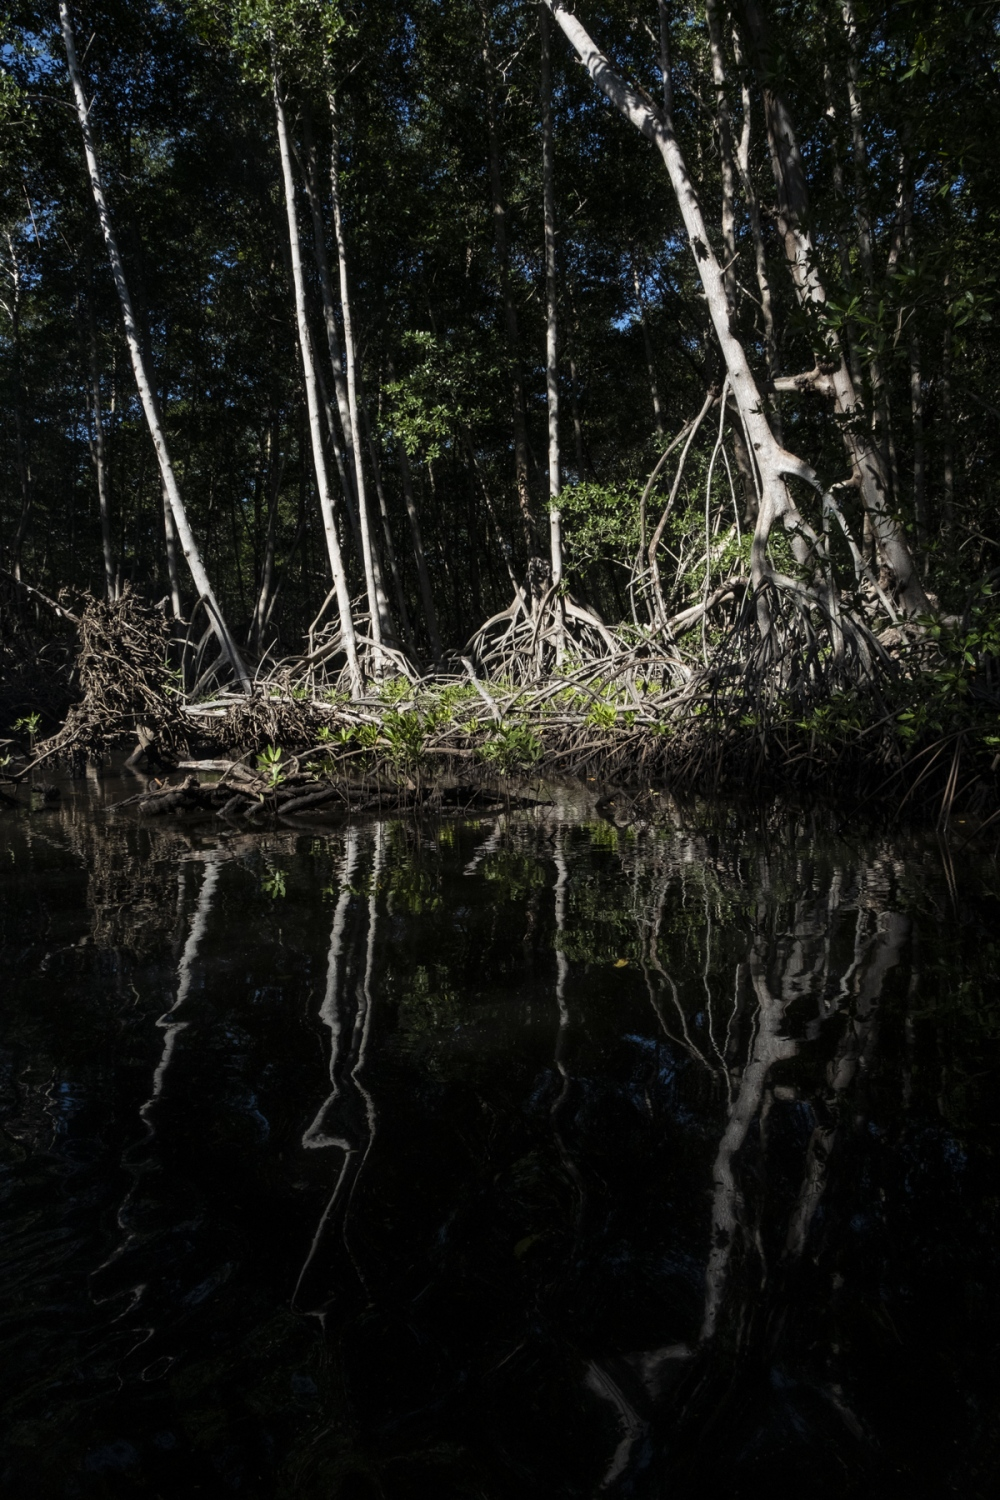 Because of rising sea levels and increased temperatures, La Barra de Santiago's mangrove ecosystem is slowly disappearing, impacting the community as a whole.